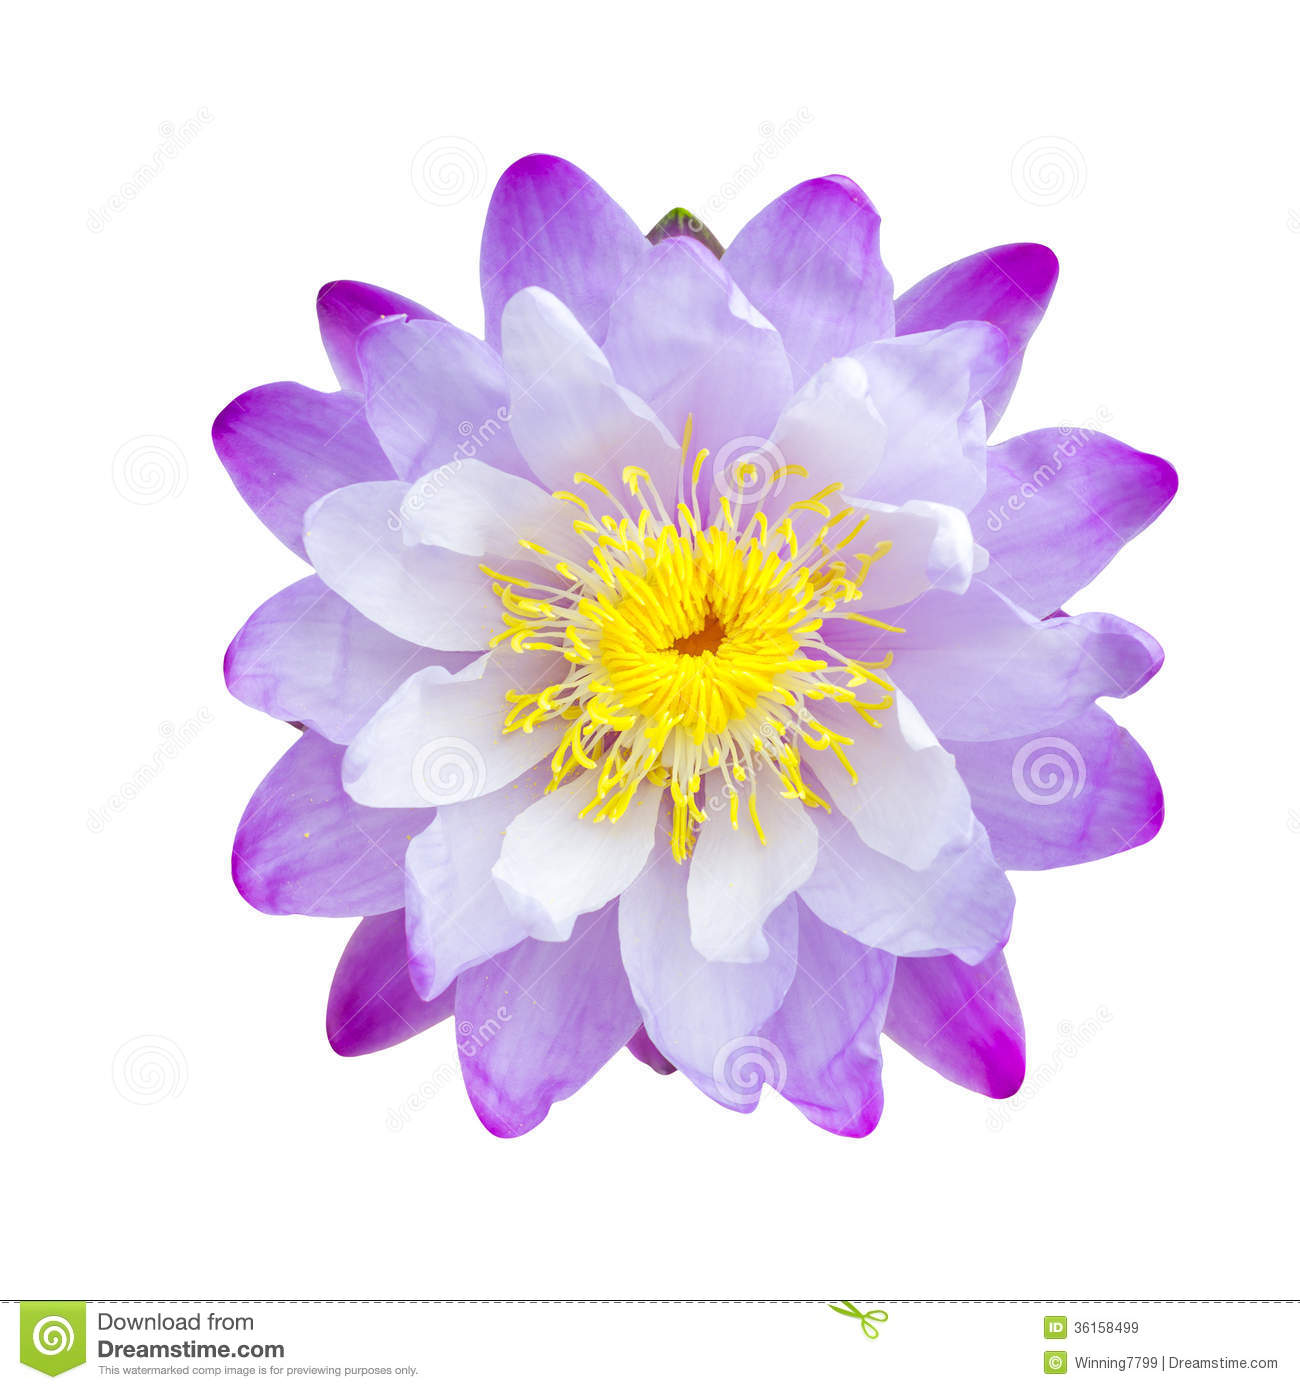 Purple lotus flower stock image image of nature pond 36158499 download purple lotus flower stock image image of nature pond 36158499 izmirmasajfo